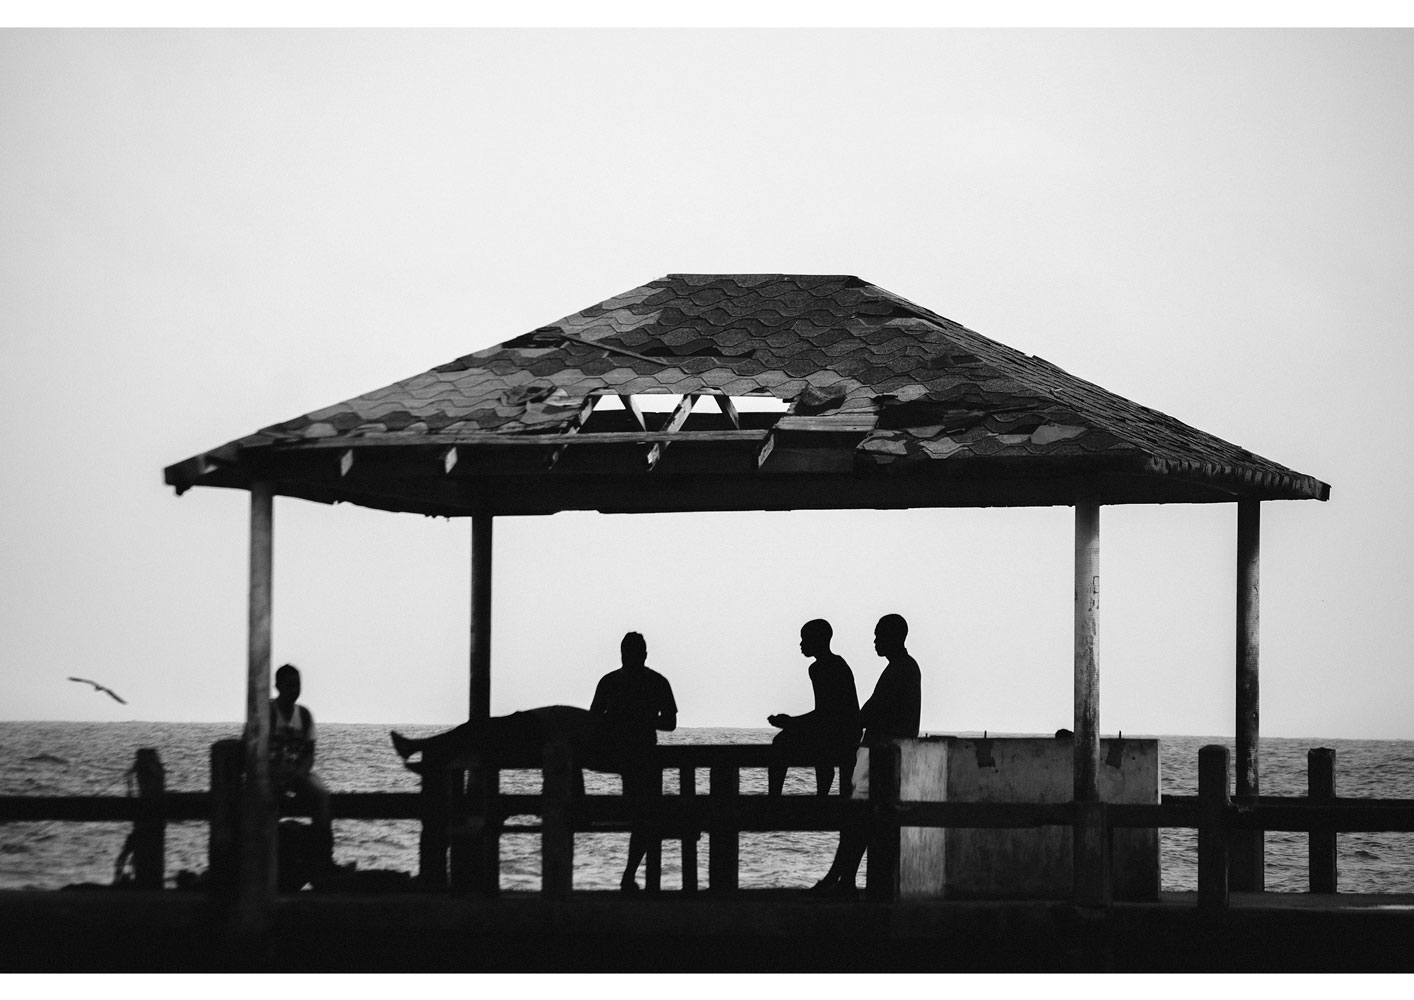 Black and white landscape photography with the title 'Choco'. Showcasing a beach scene from Colombia.